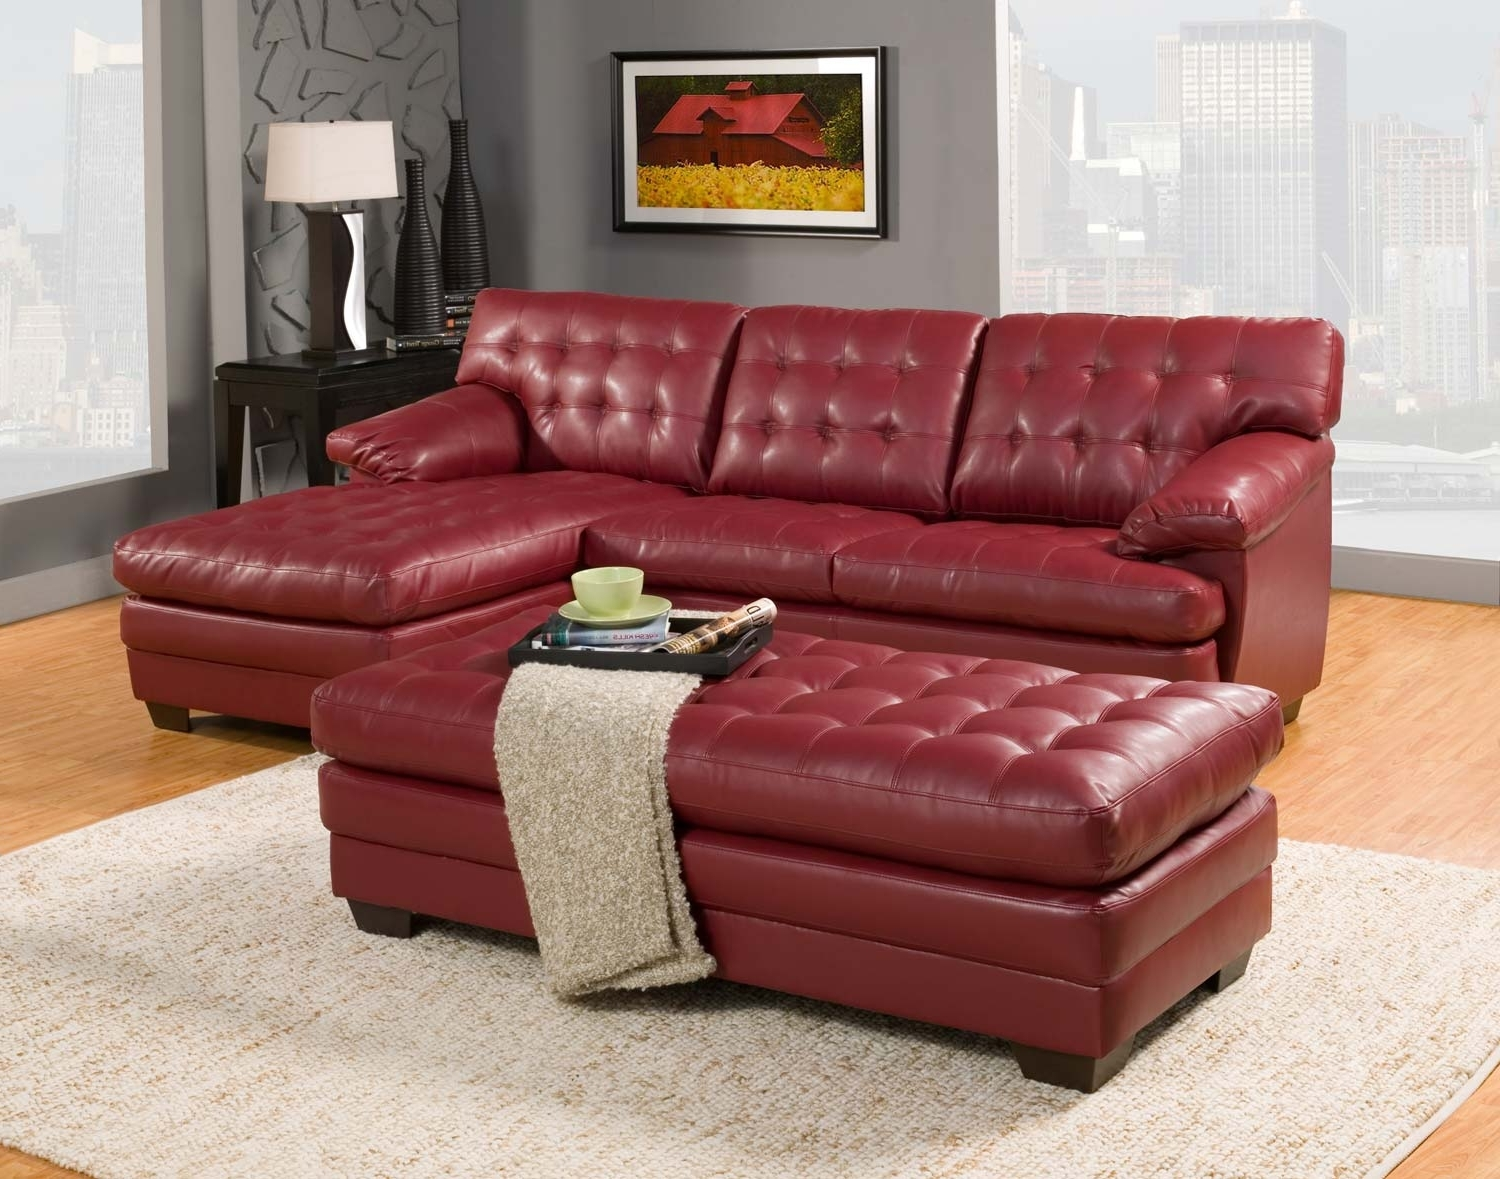 Homelegance Brooks Sectional Sofa Set – Red – Bonded Leather Inside Newest Red Leather Sectional Sofas With Ottoman (View 3 of 15)